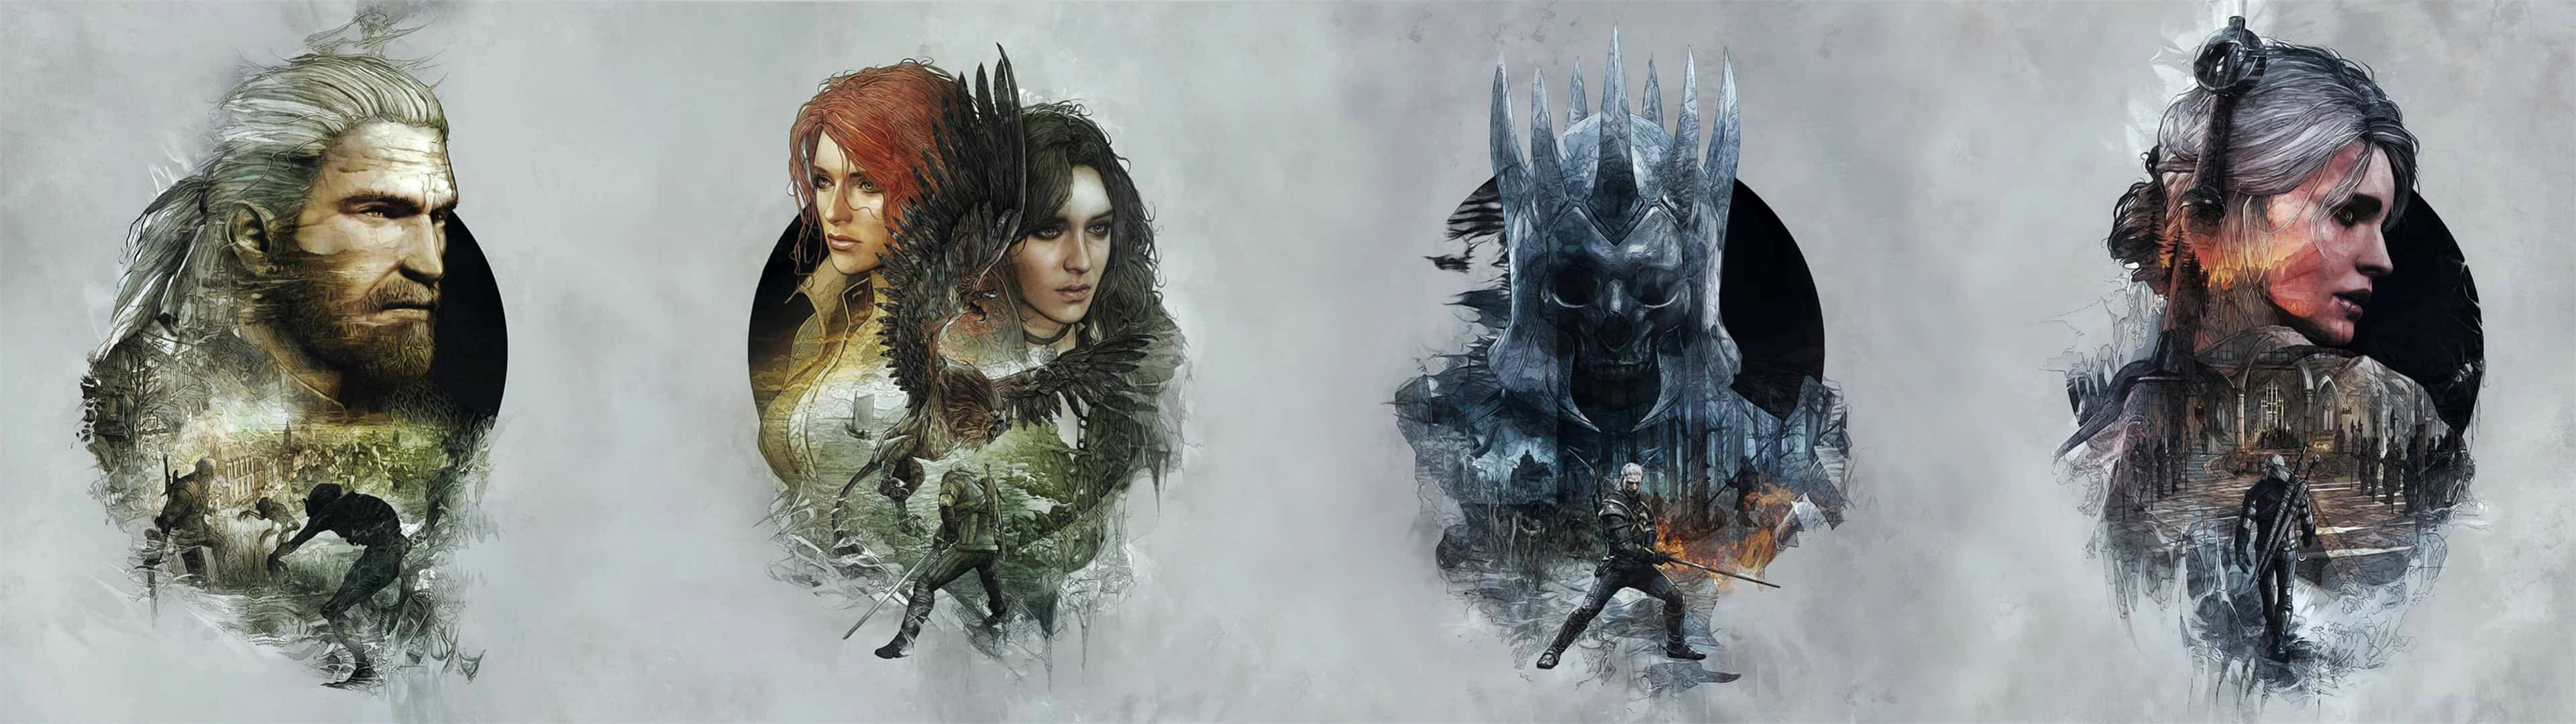 the witcher 3 wild hunt dual monitor wallpaper